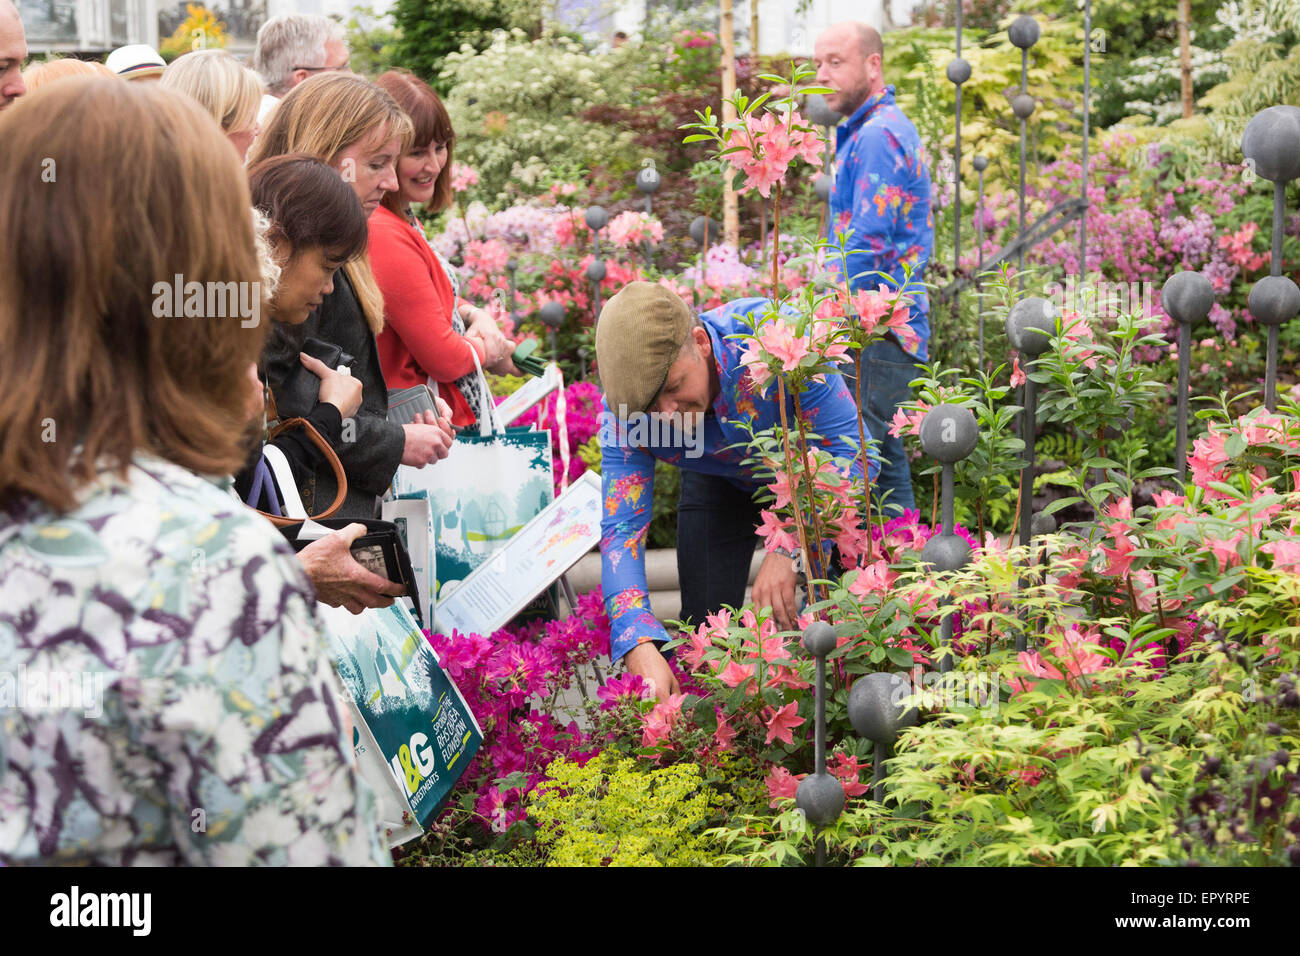 London, UK. 23 May 2015. Sell-off of plants at Hillier Nurseries. The 2015 RHS Chelsea Flower Show draws to a close Stock Photo